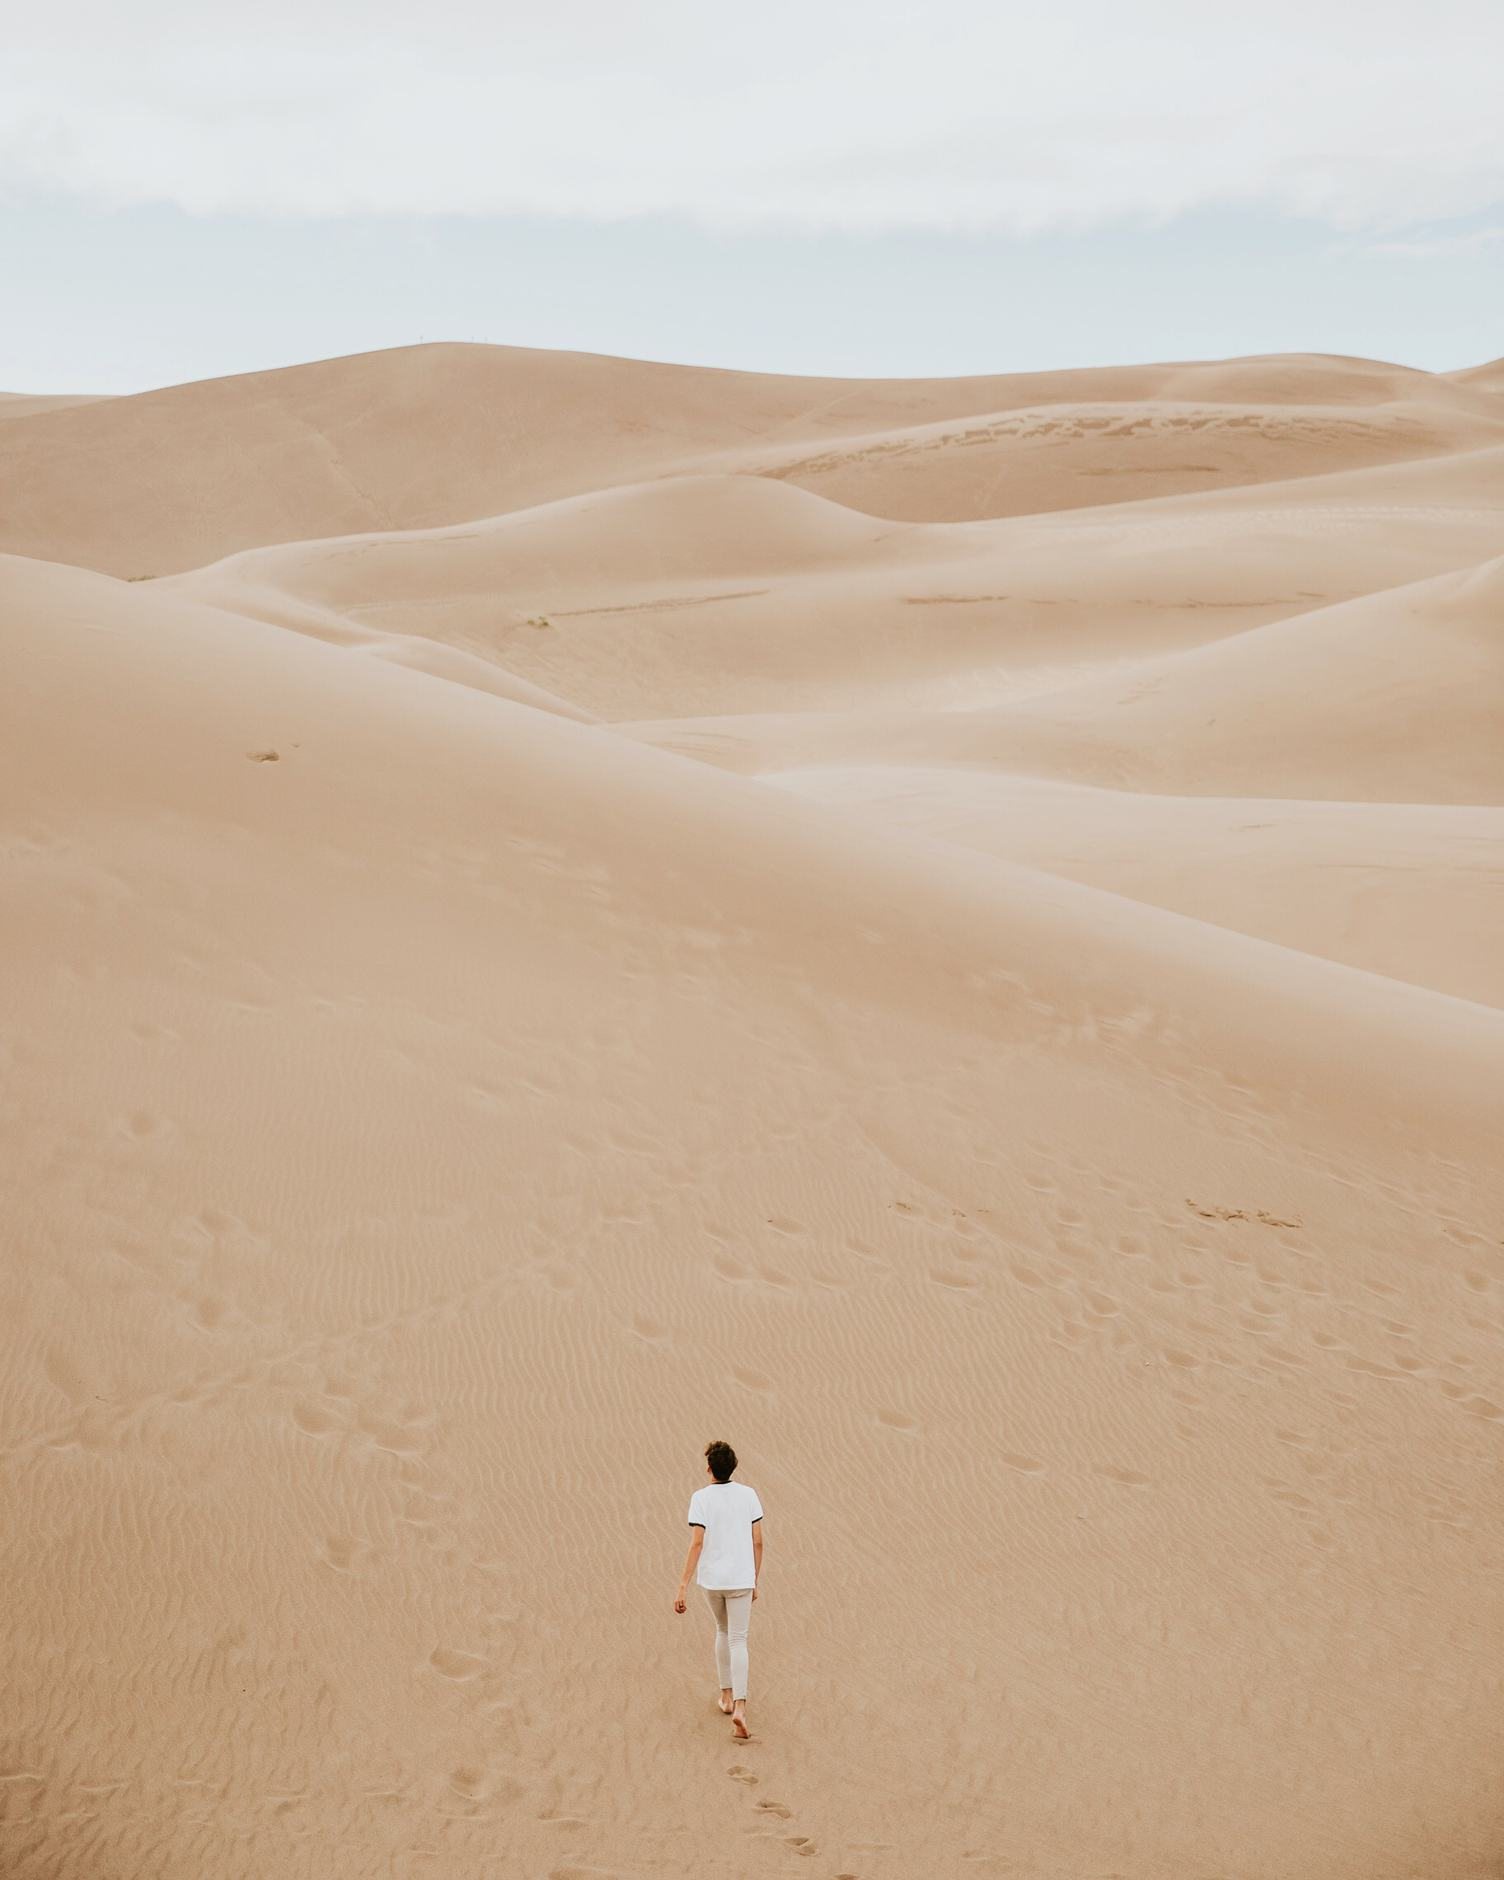 Solitary Person Walking through Sand Dunes